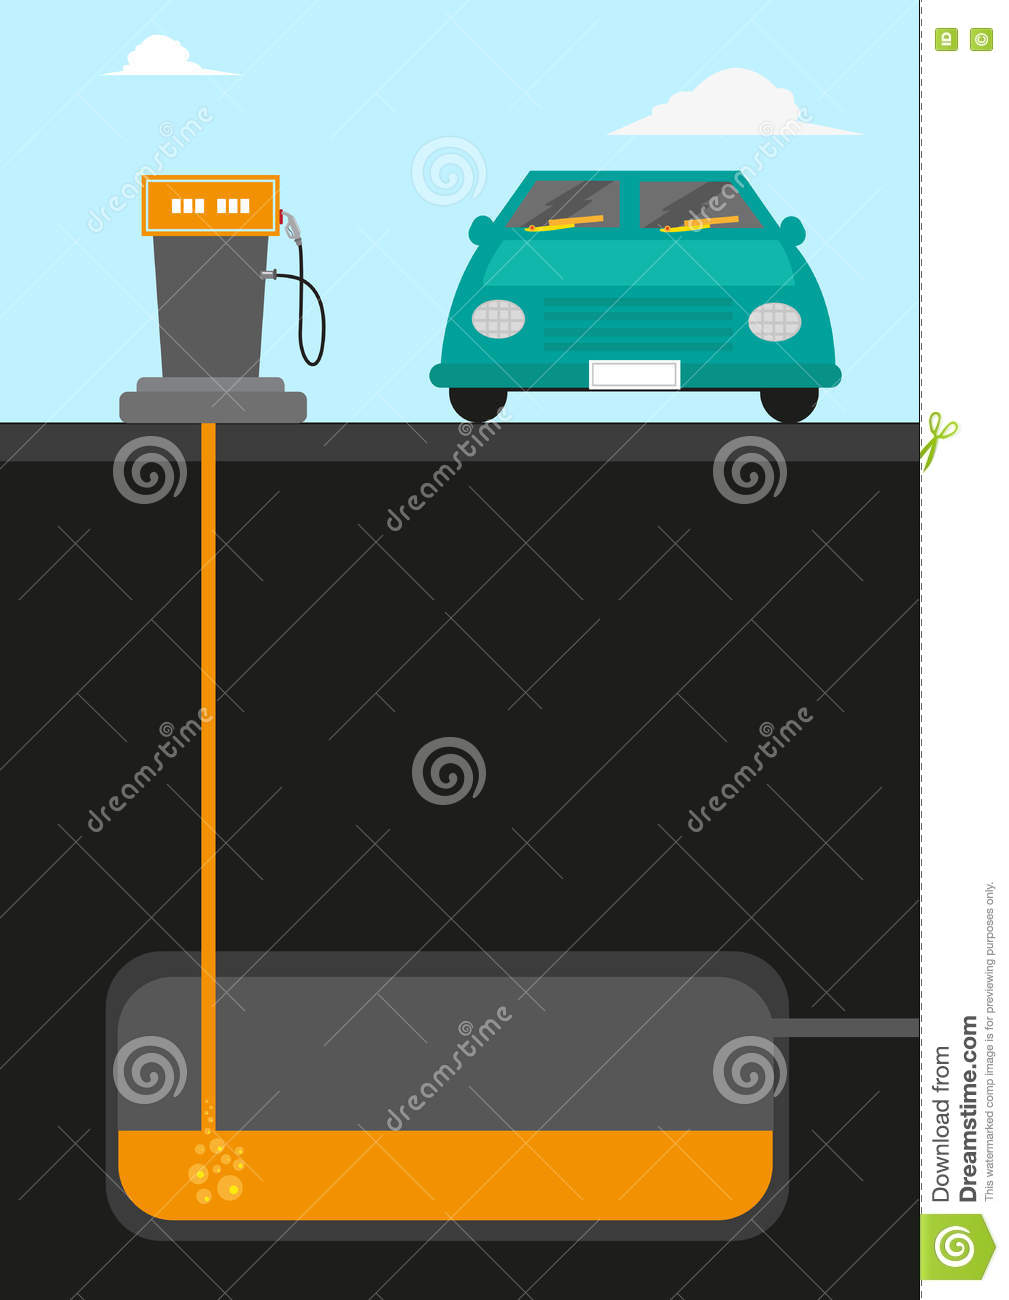 Gasoline Pumping Station Diagram Cutout With A Car Facing Front.